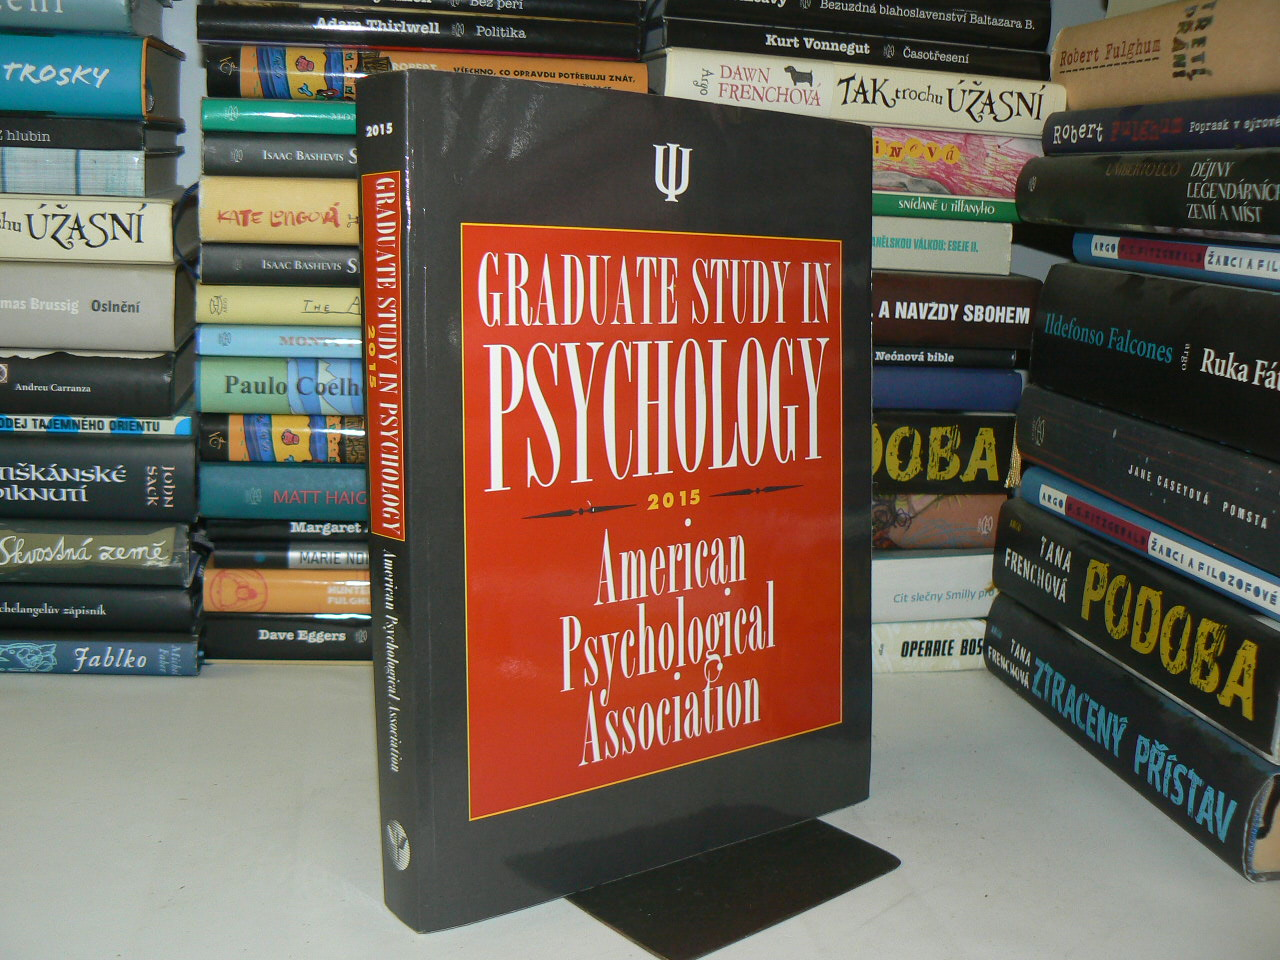 Graduate study in Psychology - kol.